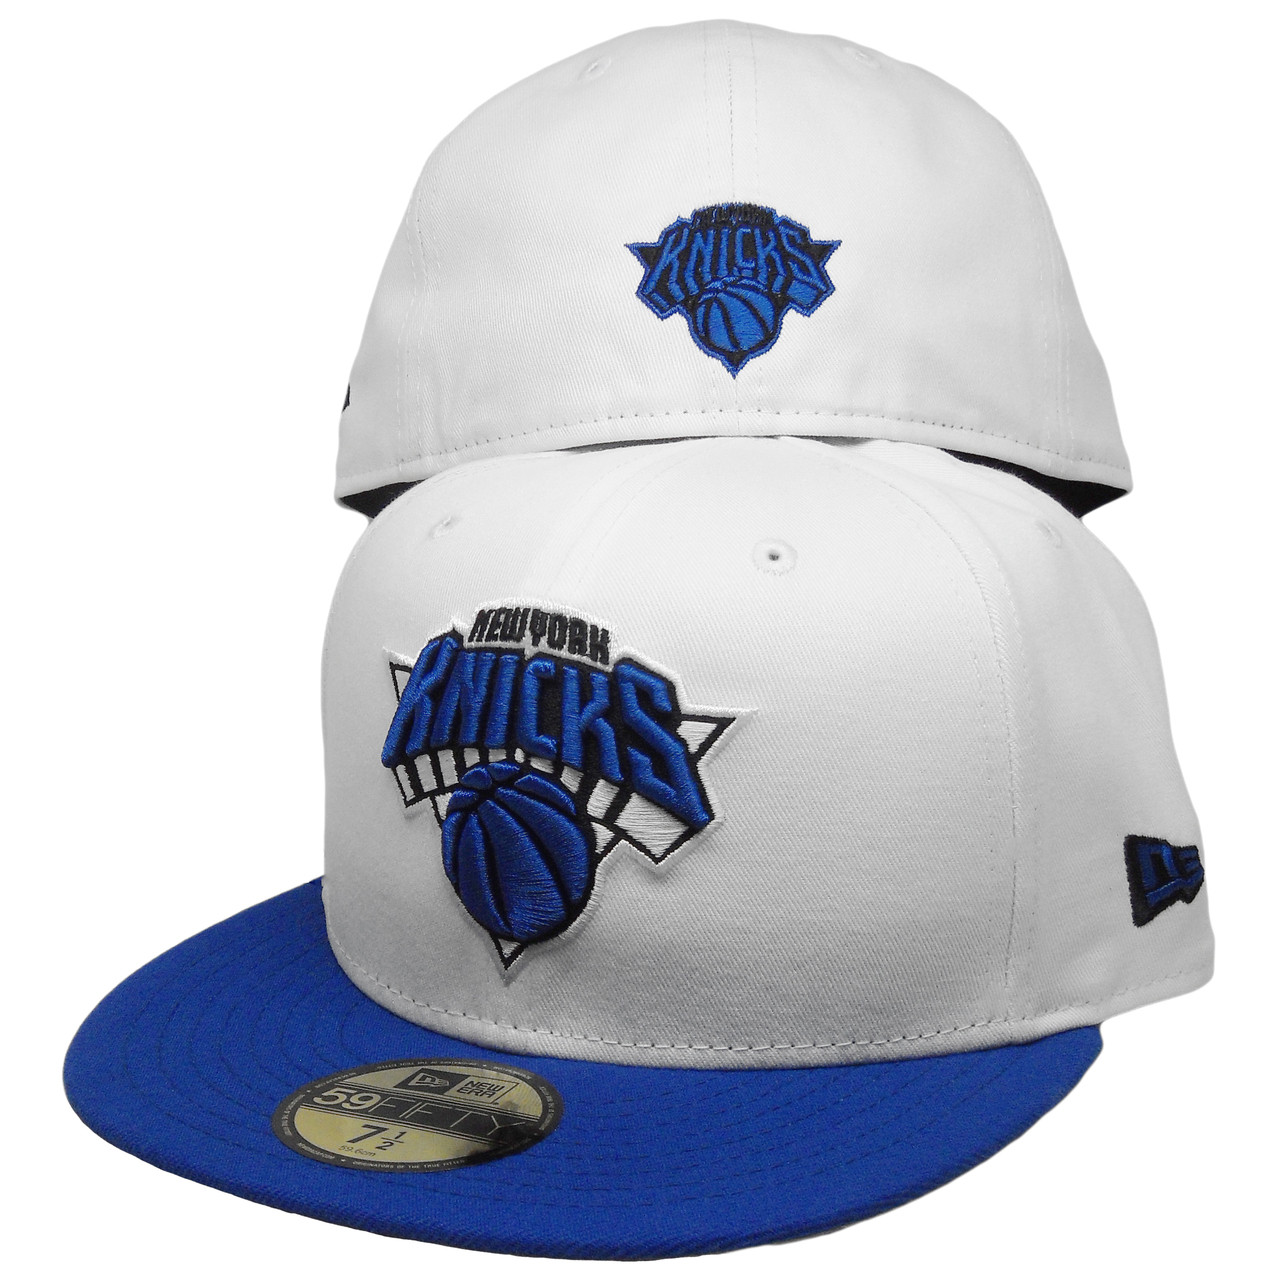 New York Knicks Custom New Era 59Fifty Fitted Hat - White 403135d36d3